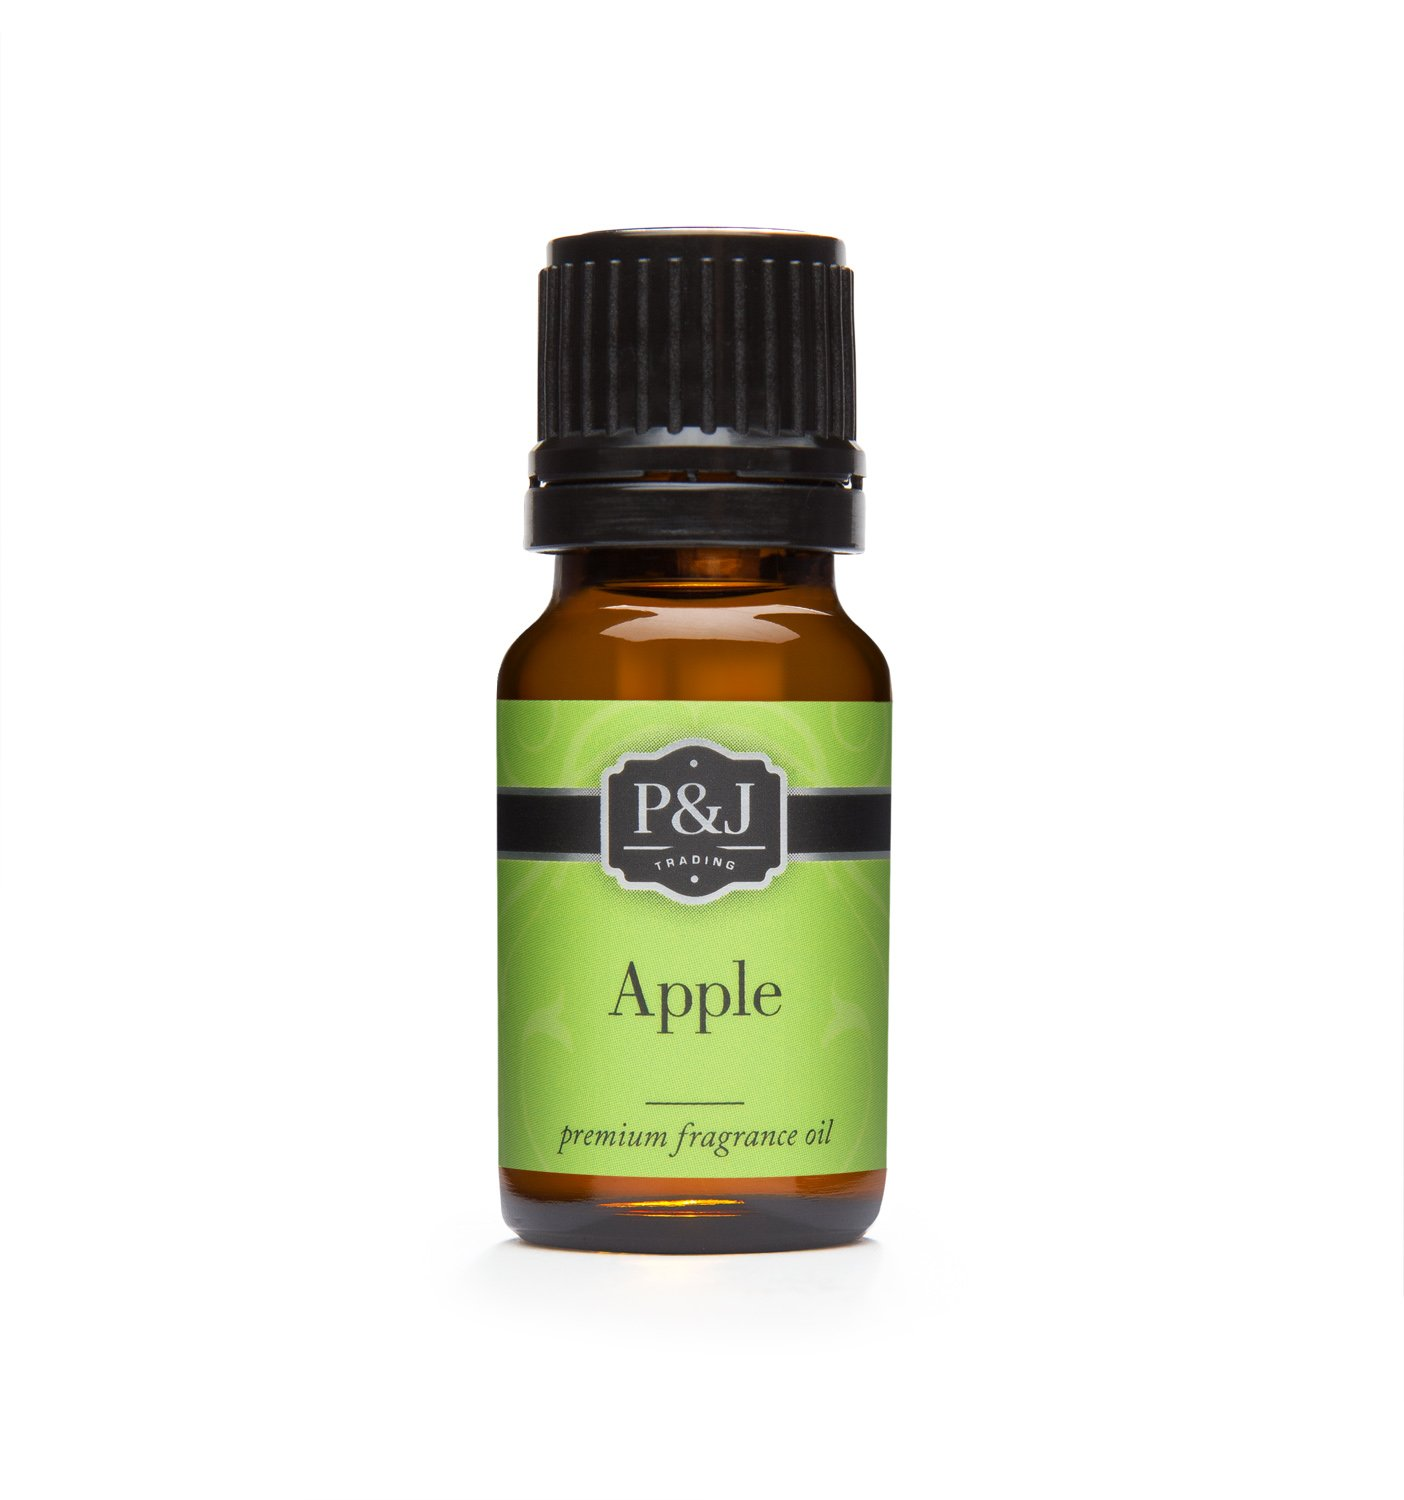 Apple Premium Grade Fragrance Oil - Perfume Oil - 10ml